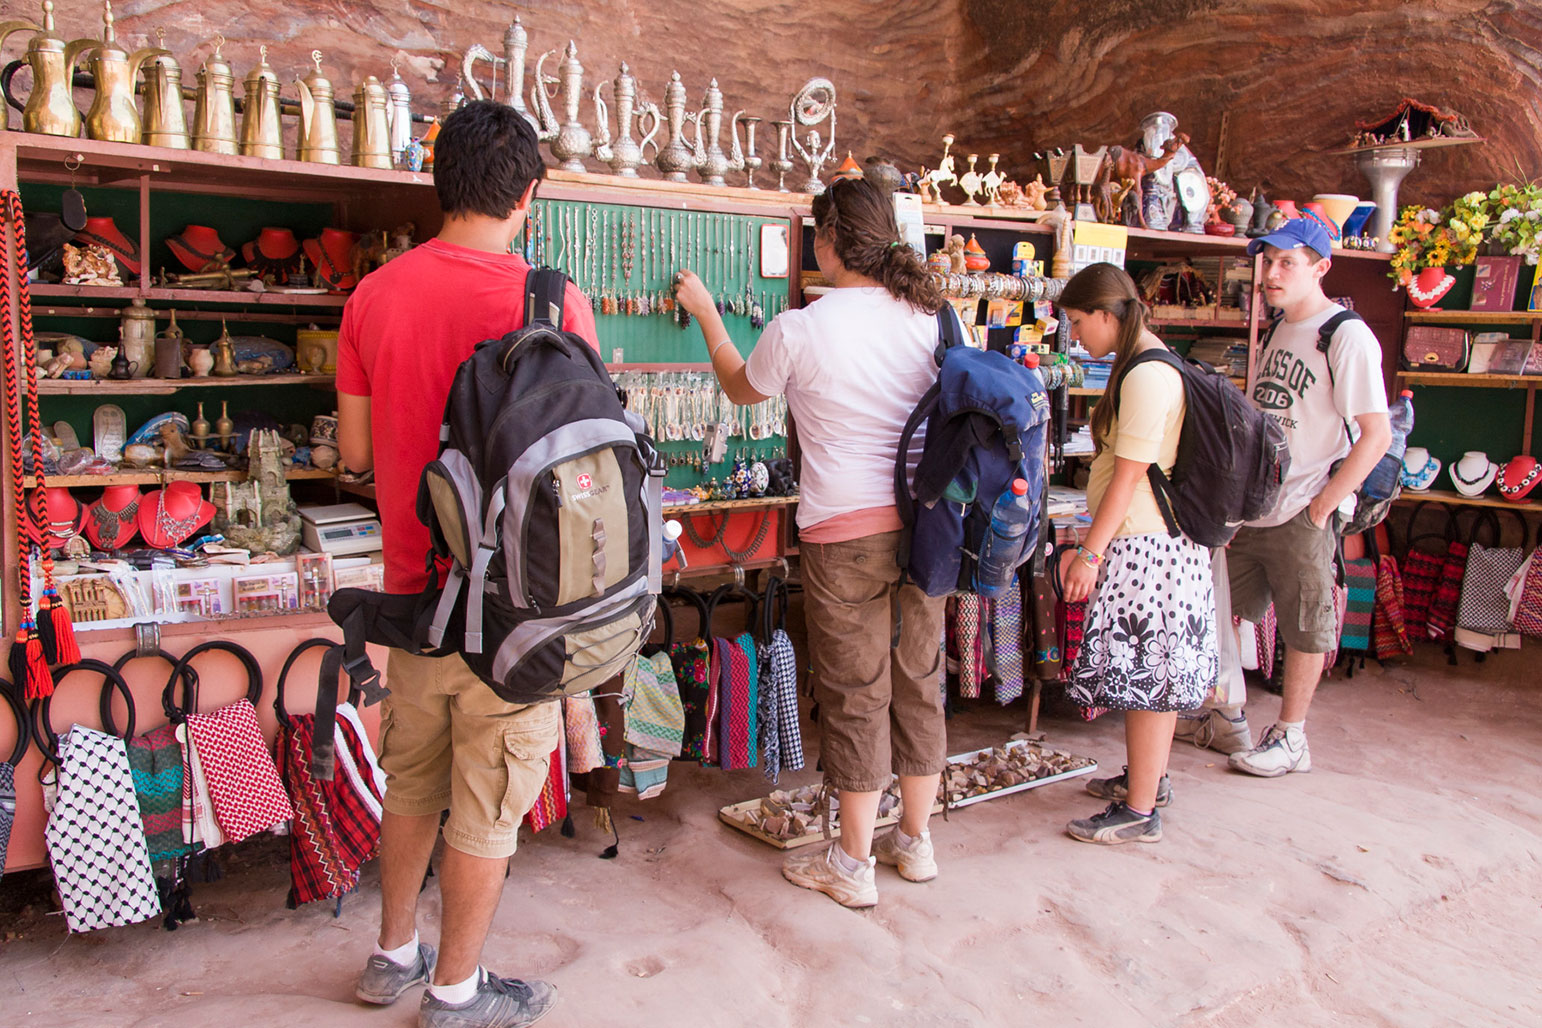 Tourists checking out the sampling of wares available in Petra.